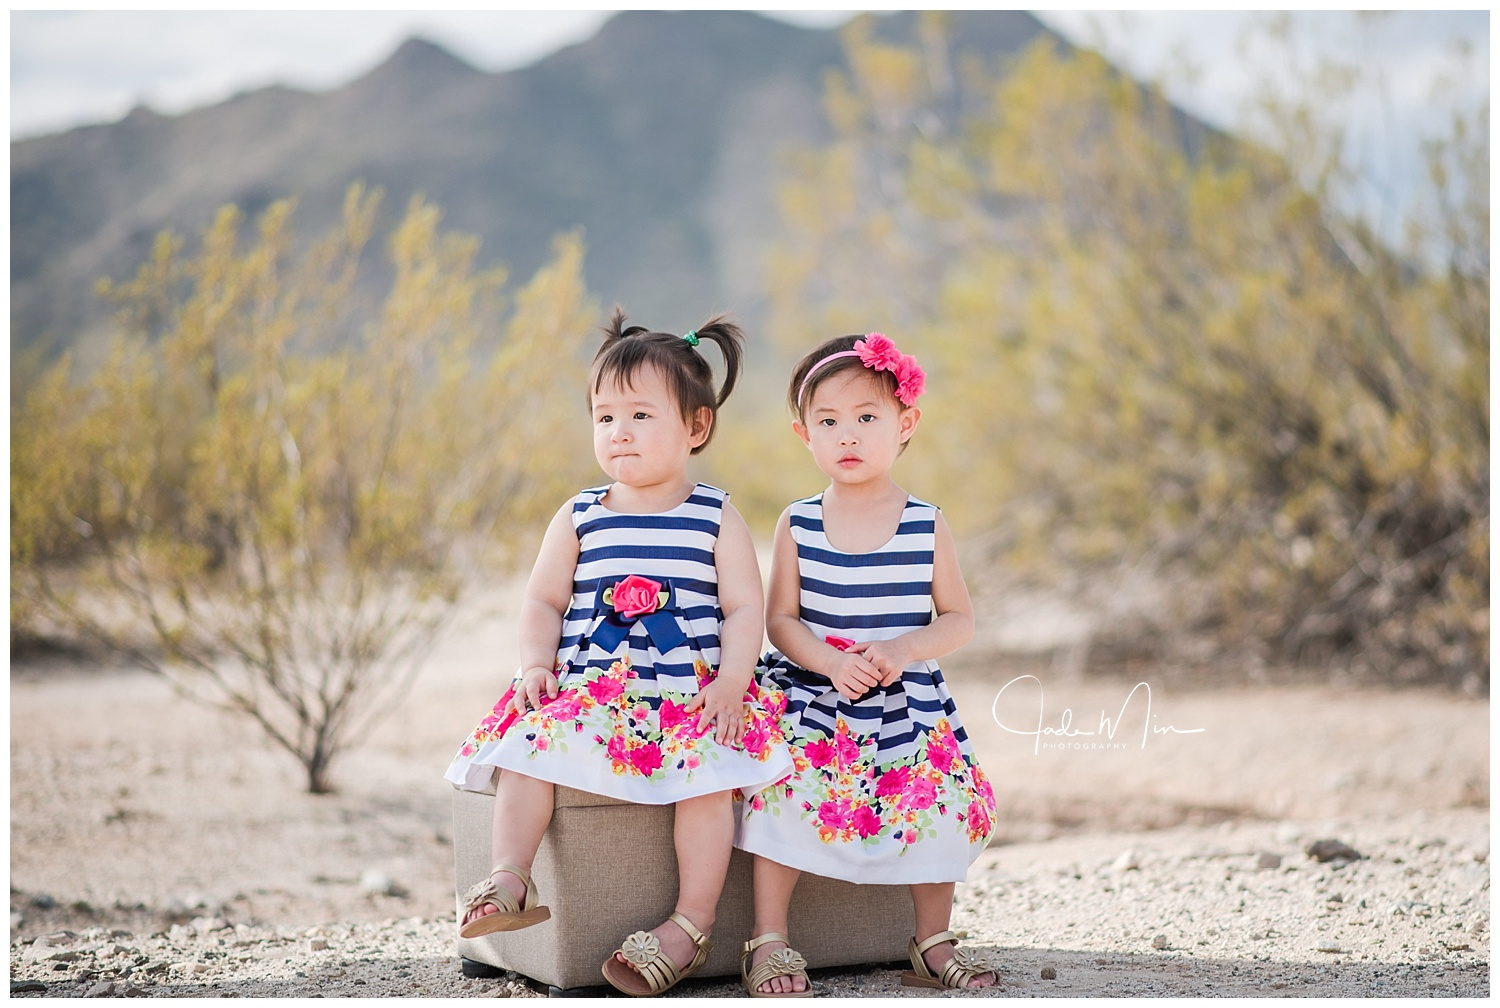 The little princesses, Jolina and Josephine. I LOVE their dress!